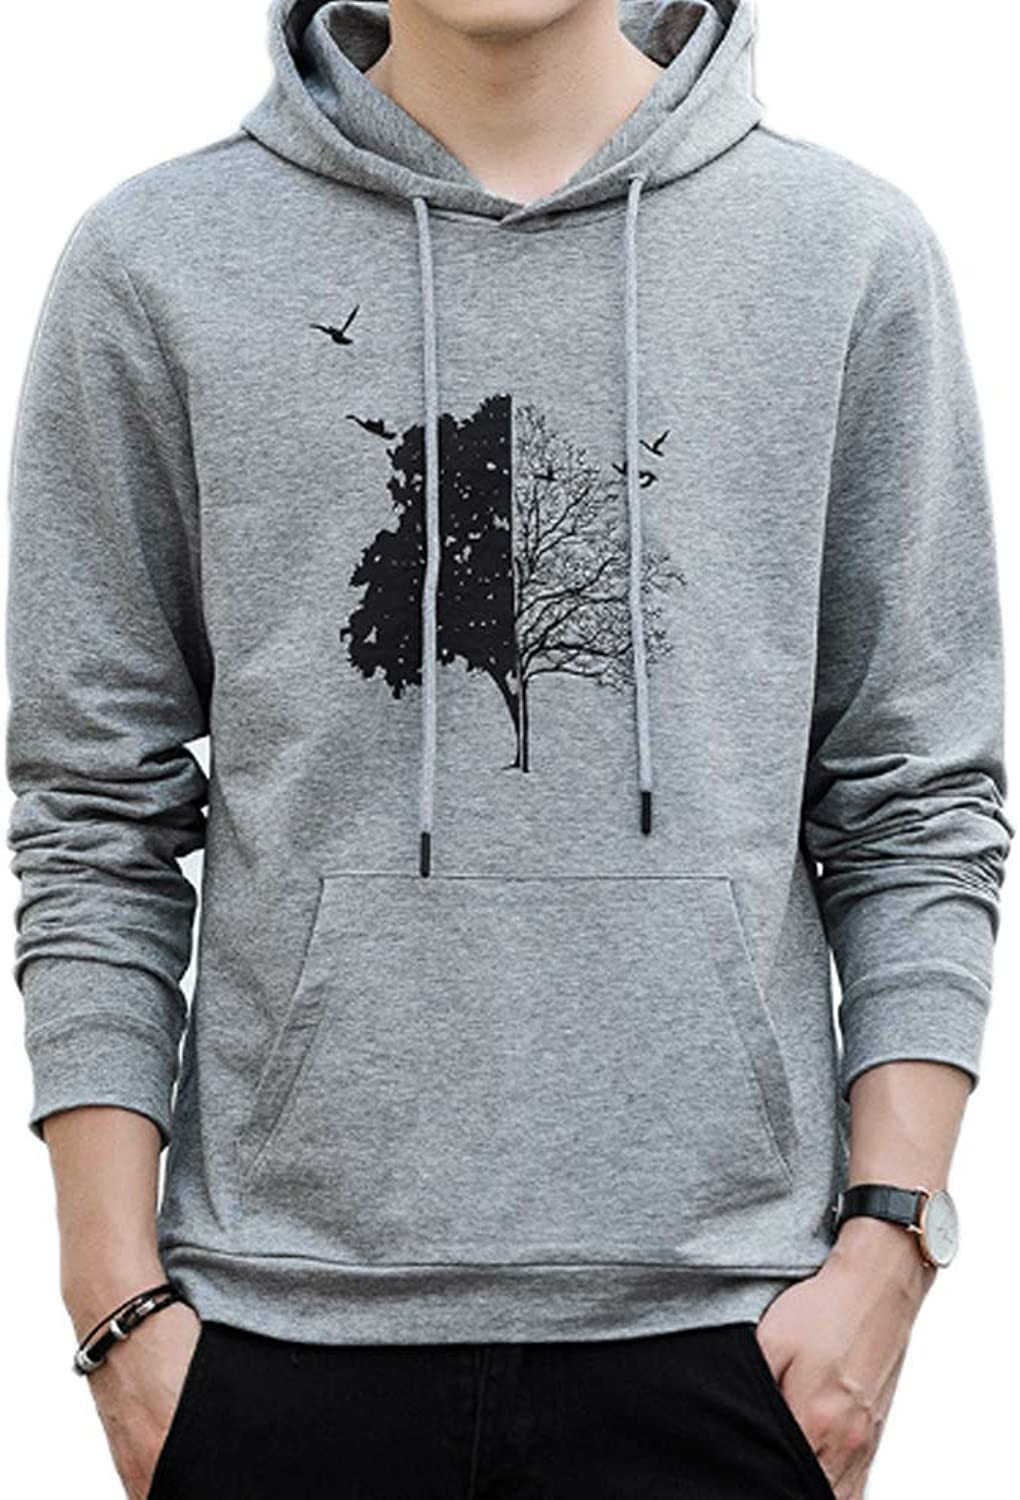 a256fc225341b QJKai Men's Hoodie Spring Spring Spring and Autumn Slim Sweatshirt ...